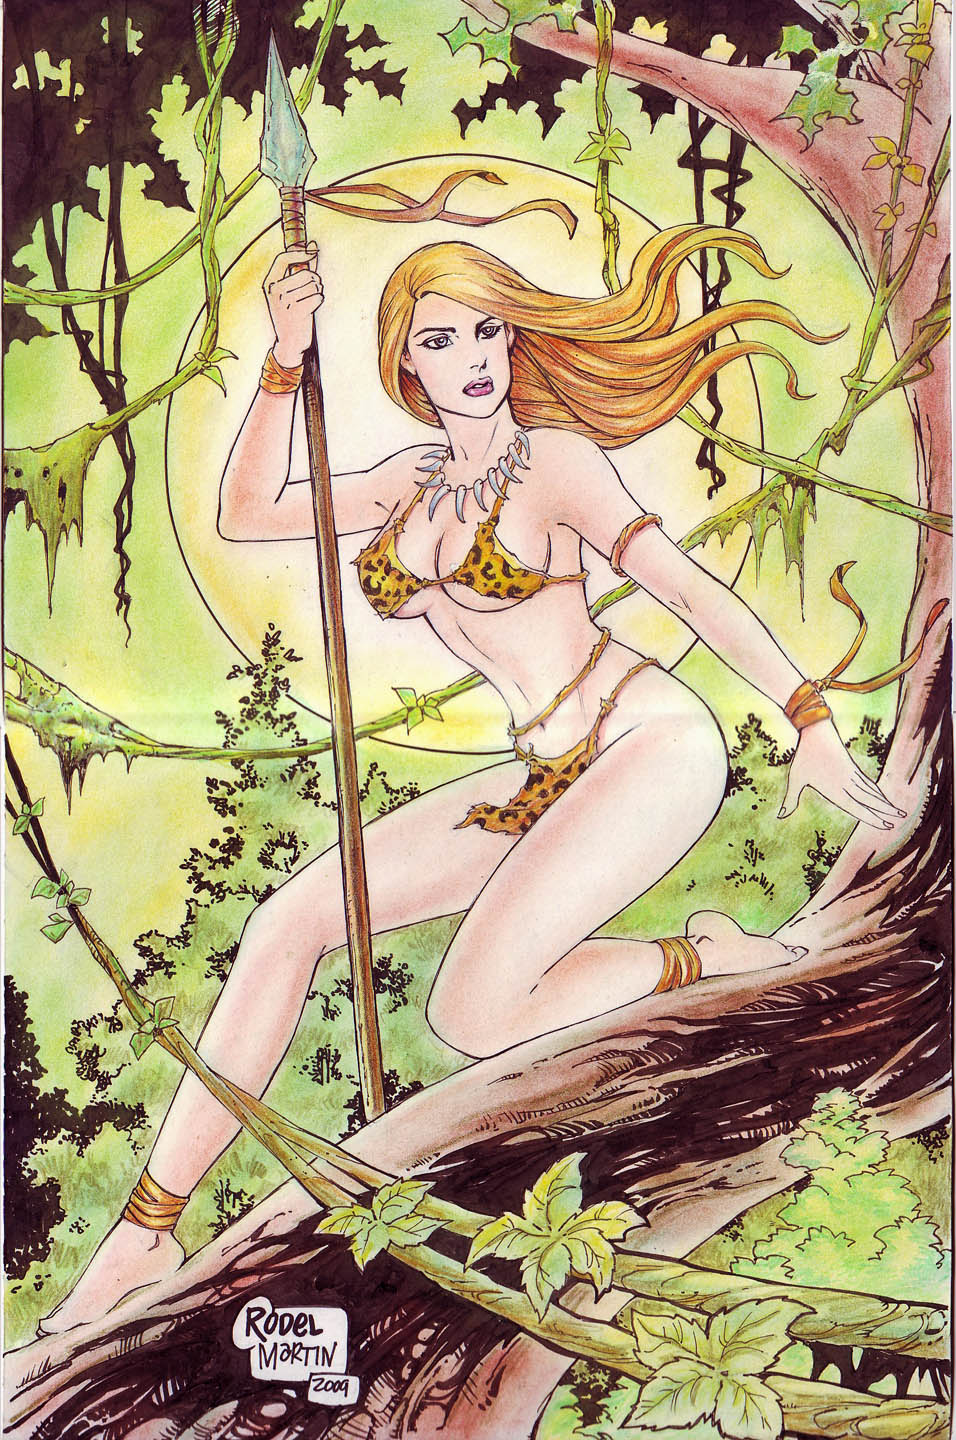 |lsm imagesize:956x1440 JUNGLE GIRL by RODEL MARTIN (07222014) by rodelsm21